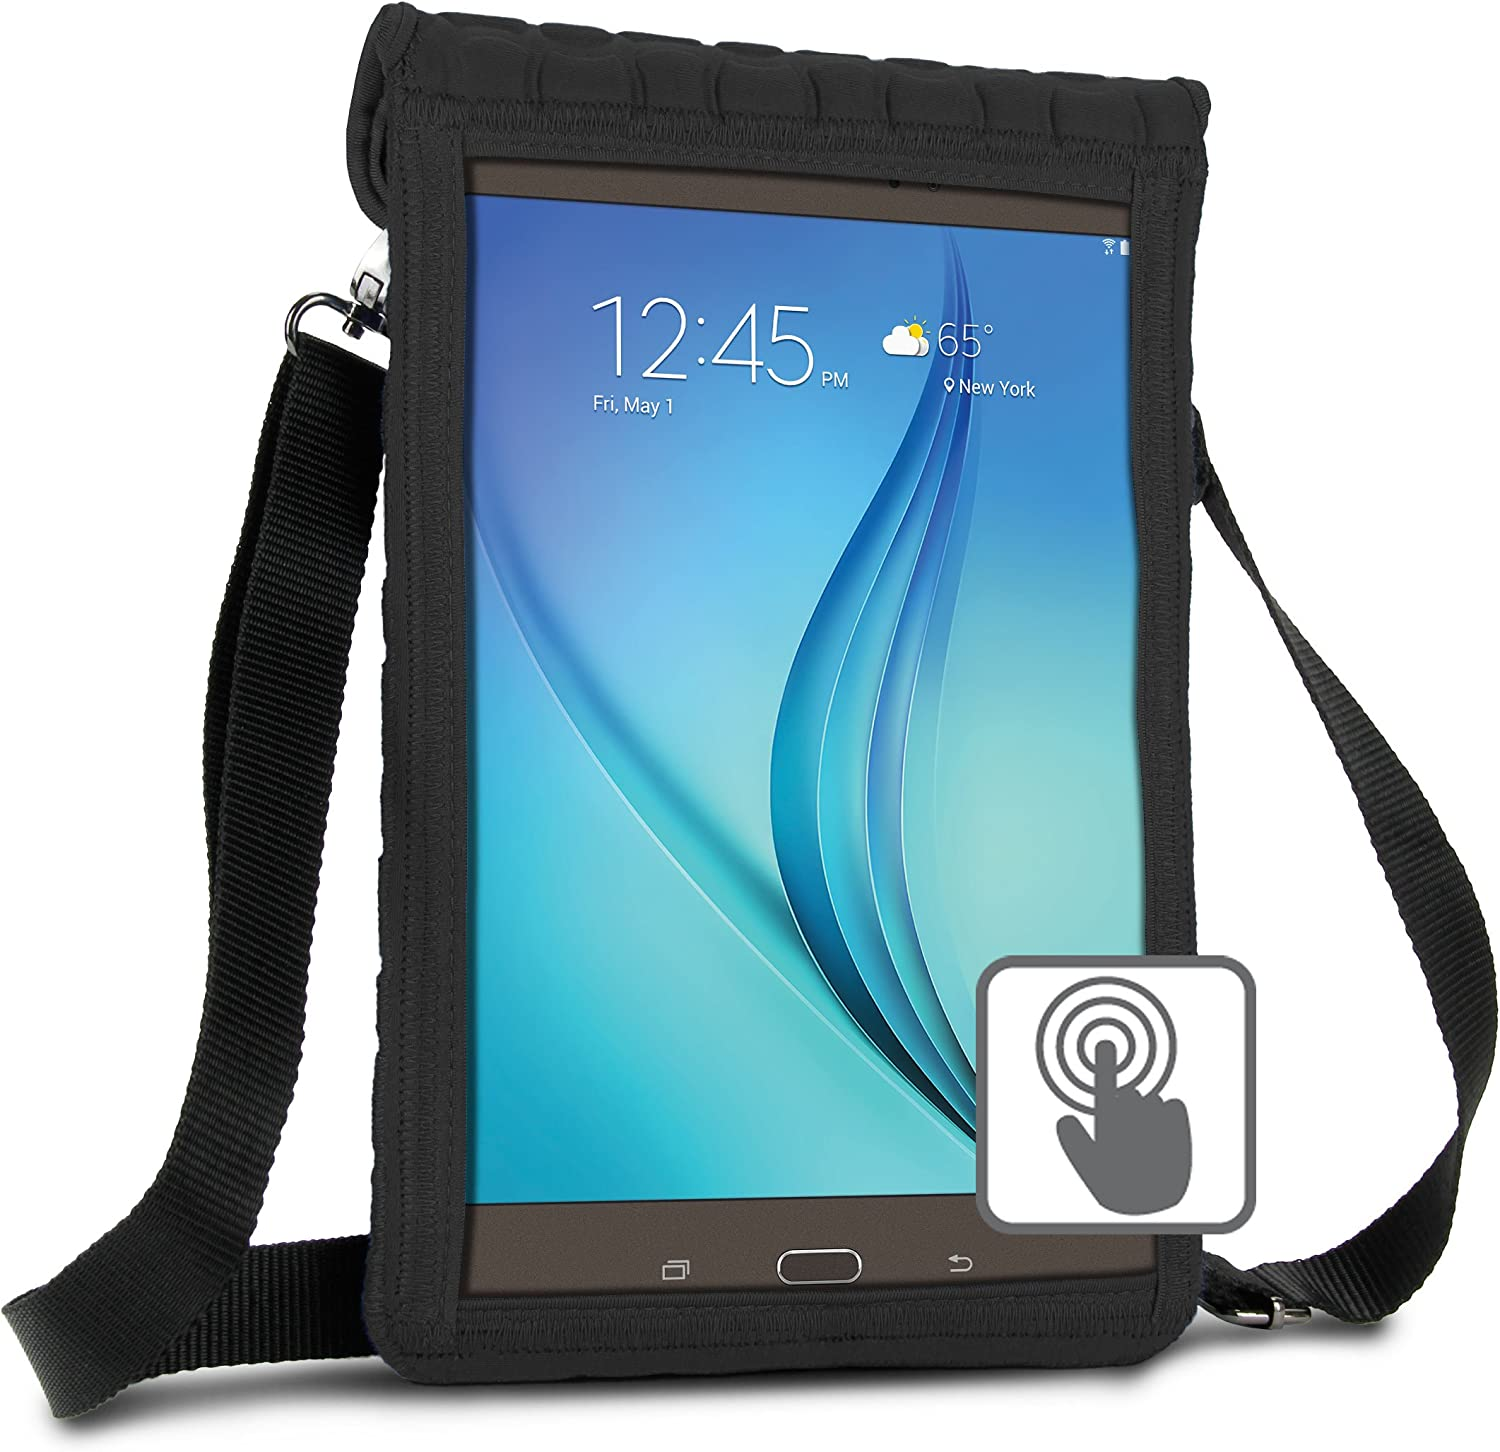 USA GEAR 10 inch Tablet Case Cover Compatible with Samsung Galaxy Tab A 10.1 and 10.5, Galaxy Tab S5e 10.5, Lenovo Tab4 10, More 10 inch Tablets - Built-in Screen Protector & Carry Strap (Black)